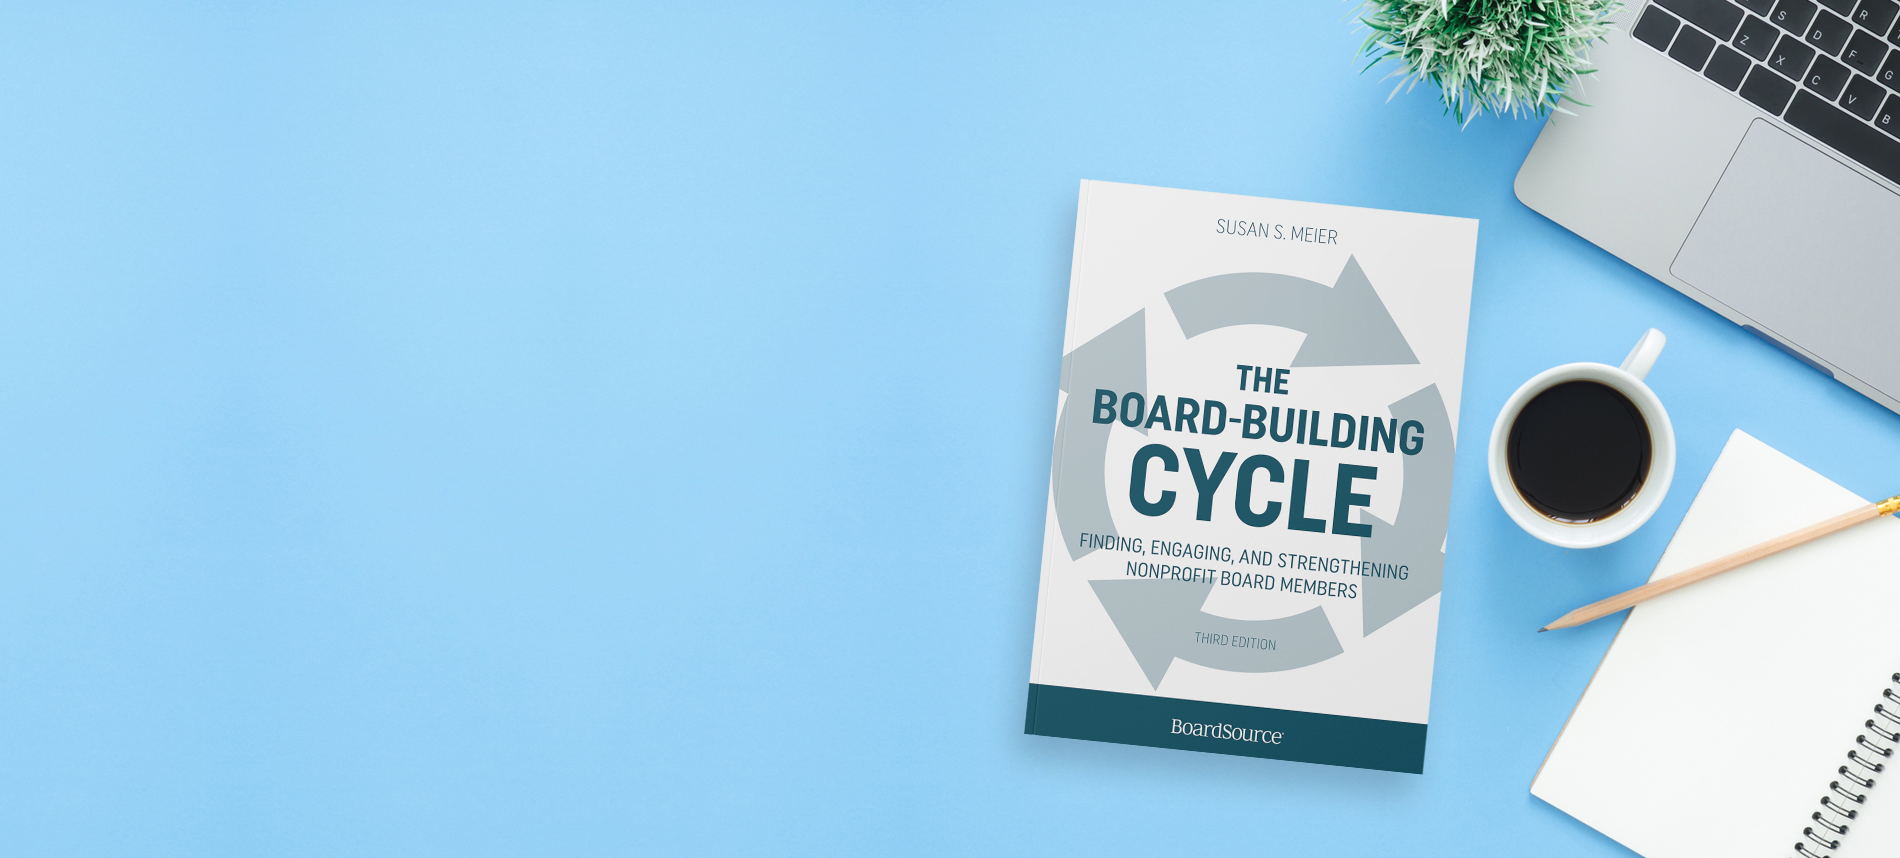 Board Building Cycle - Book On Desk